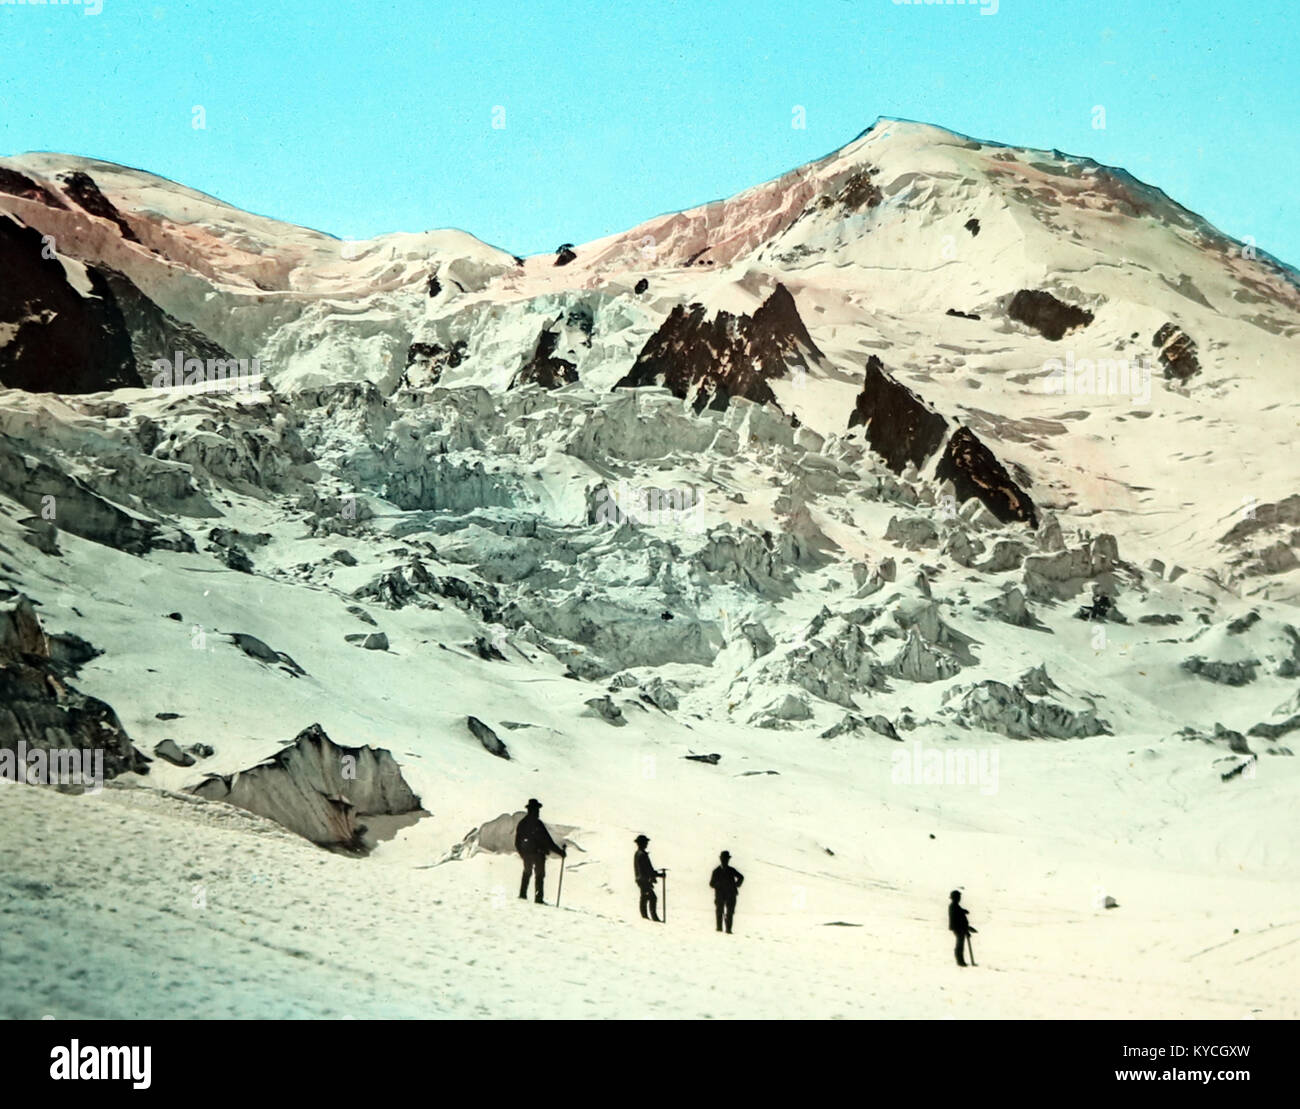 Climbers on Mont Blanc, Victorian period, hand coloured photo - Stock Image